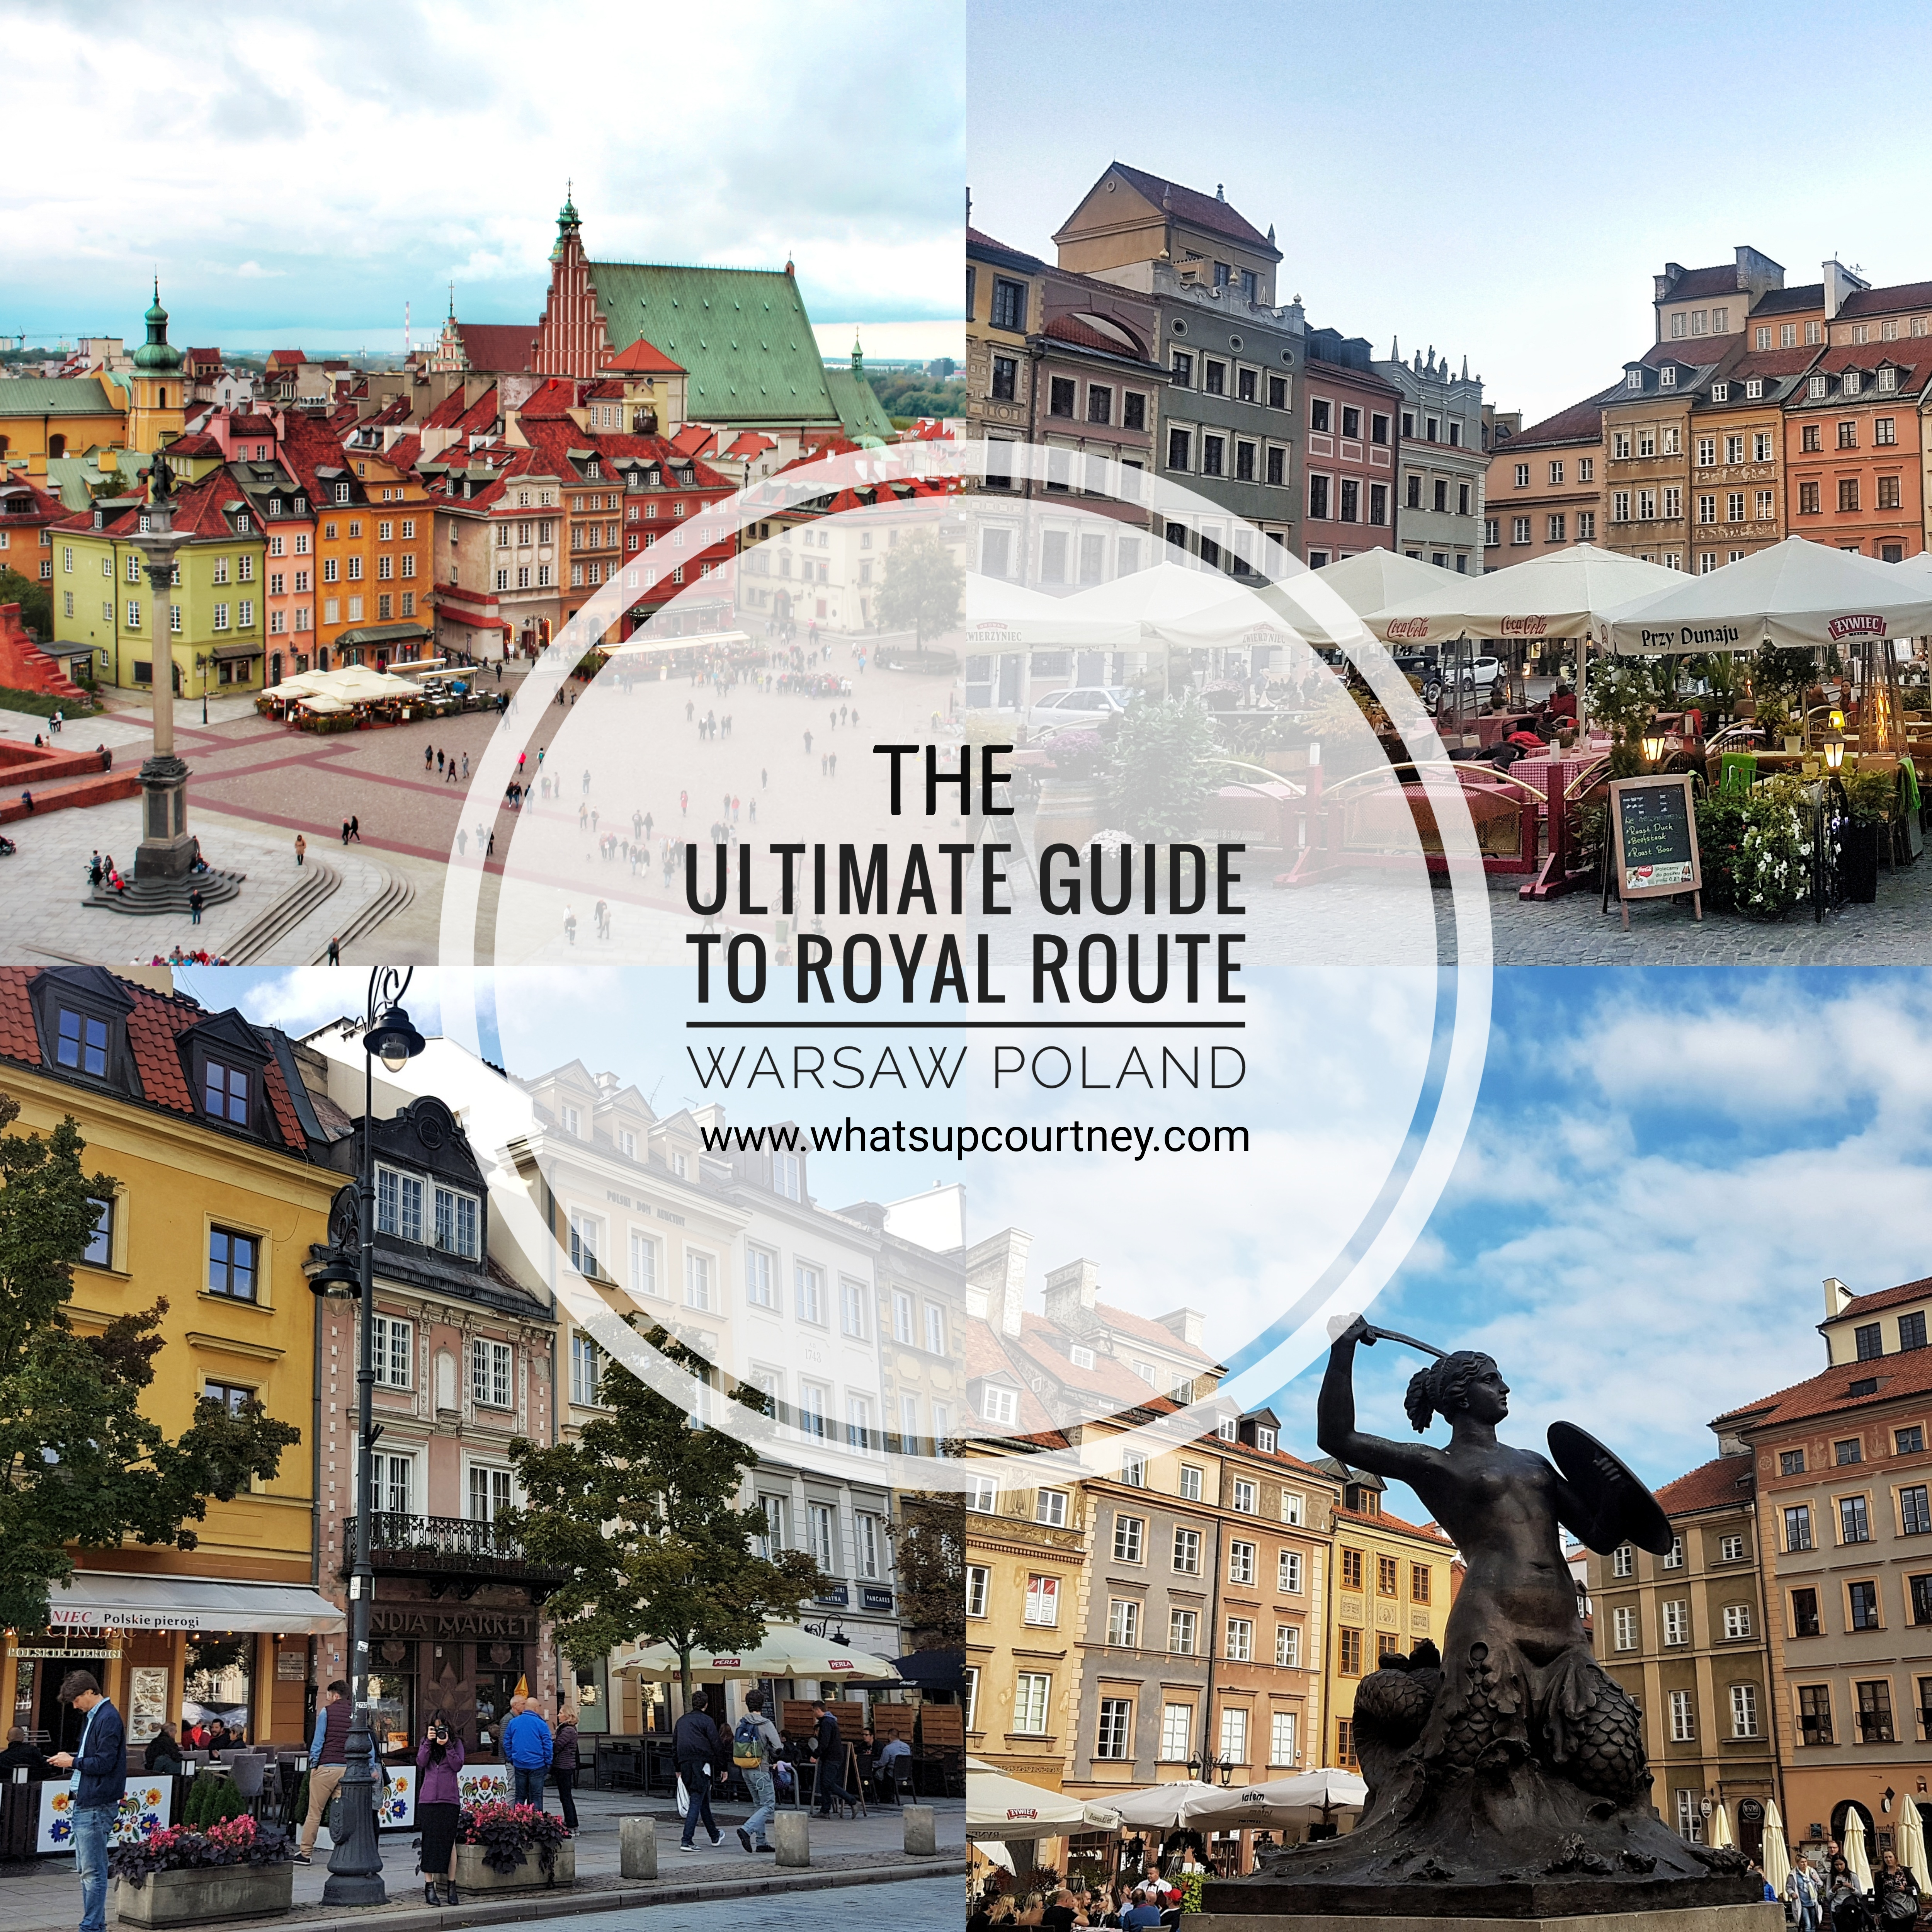 The ultimate guide to Royal Route Warsaw Poland